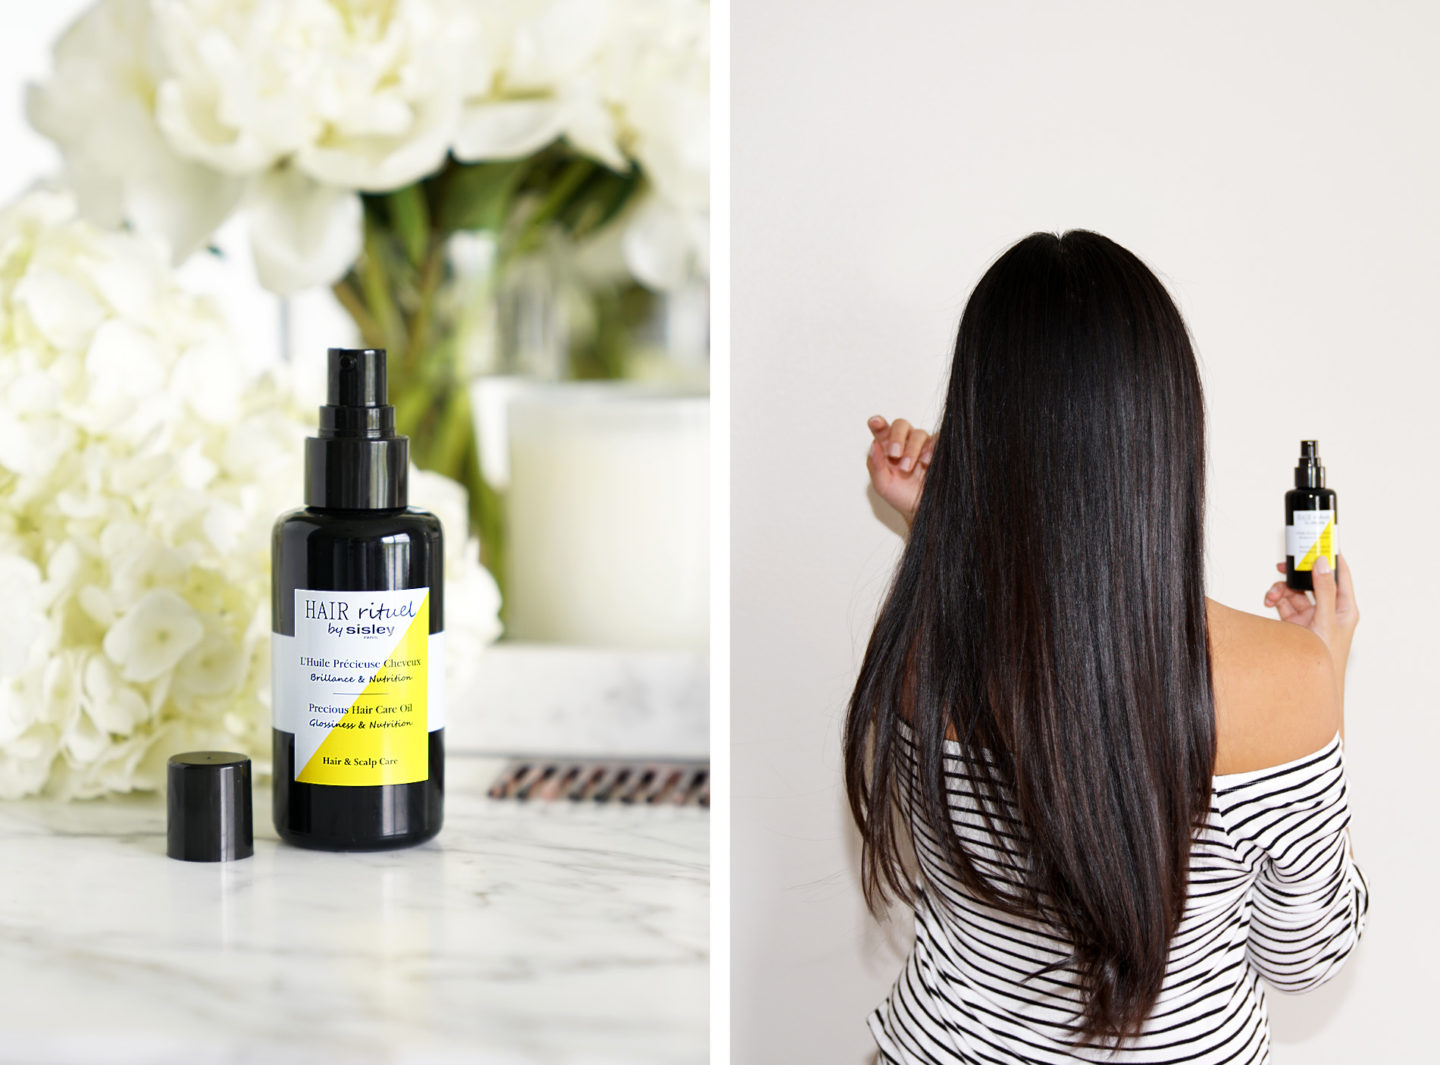 Hair Rituel par Sisley Precious Hair Oil Review | Le livre de beauté